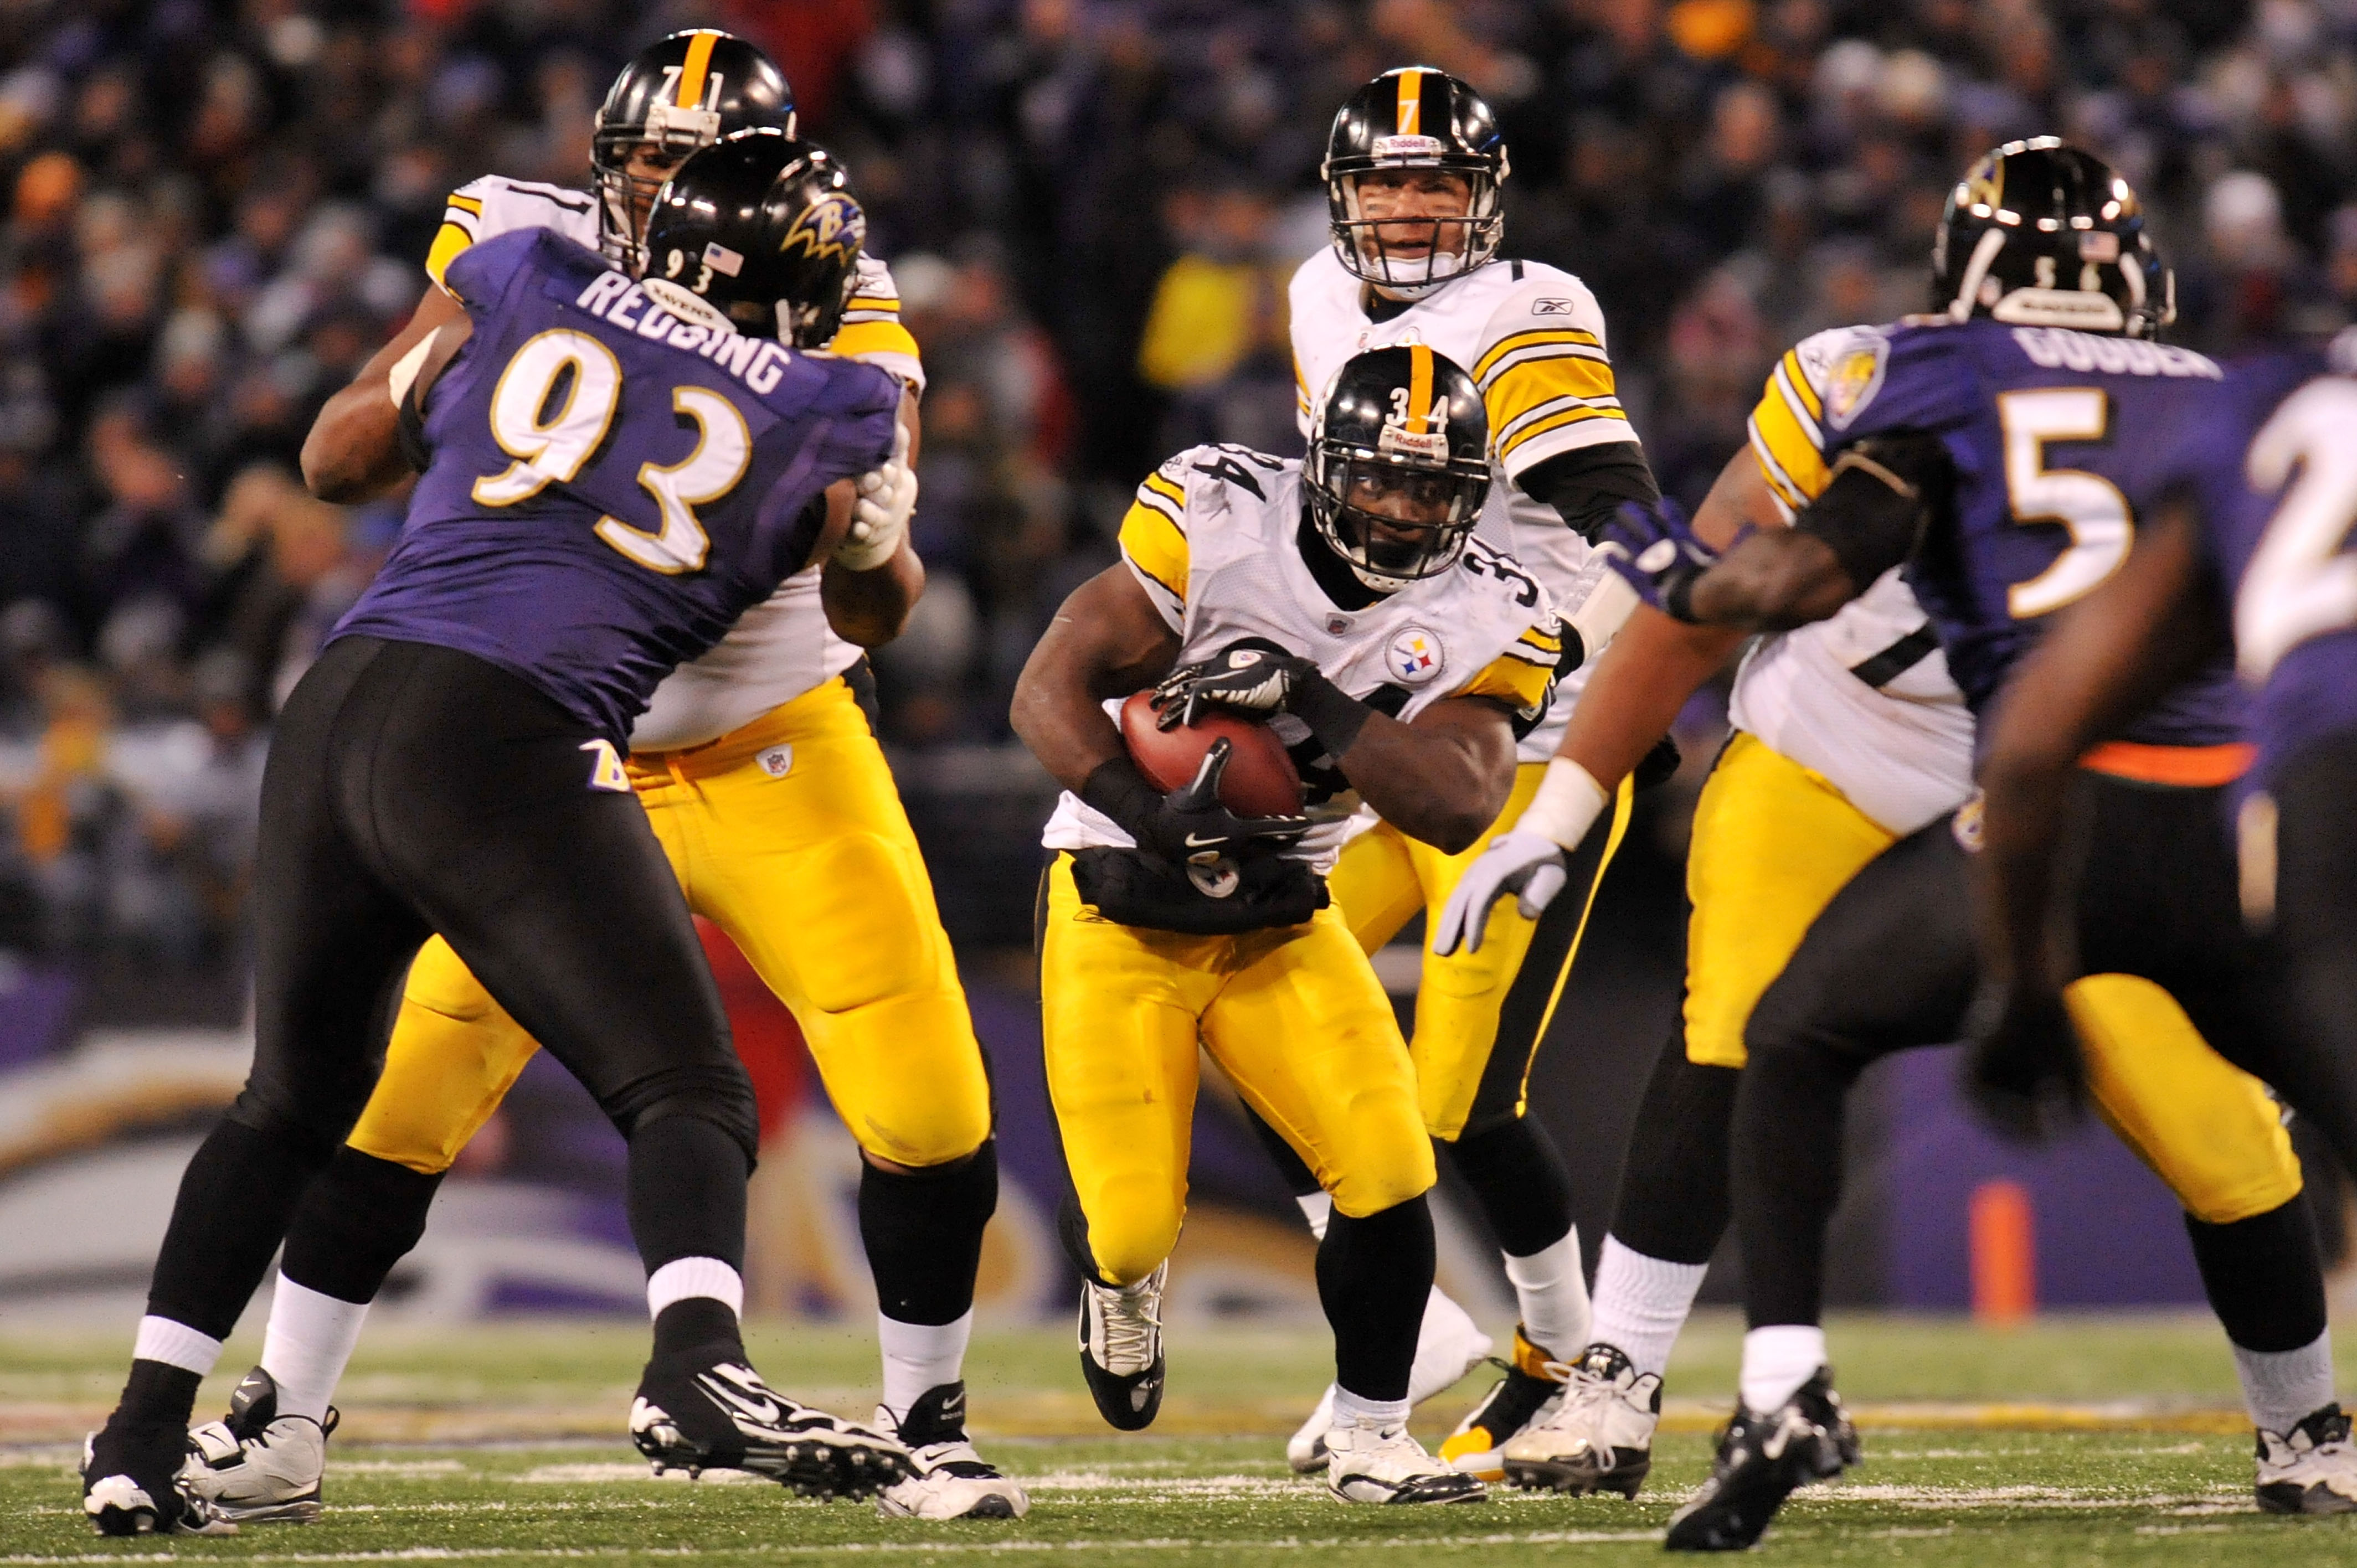 BALTIMORE, MD - DECEMBER 05:  Running back Rashard Mendenhall #34 of the Pittsburgh Steelers runs the ball against defensive end Cory Redding #93 and linebacker Tavares Gooden #56 of the Baltimore Ravens during the third quarter of the game at M&T Bank St